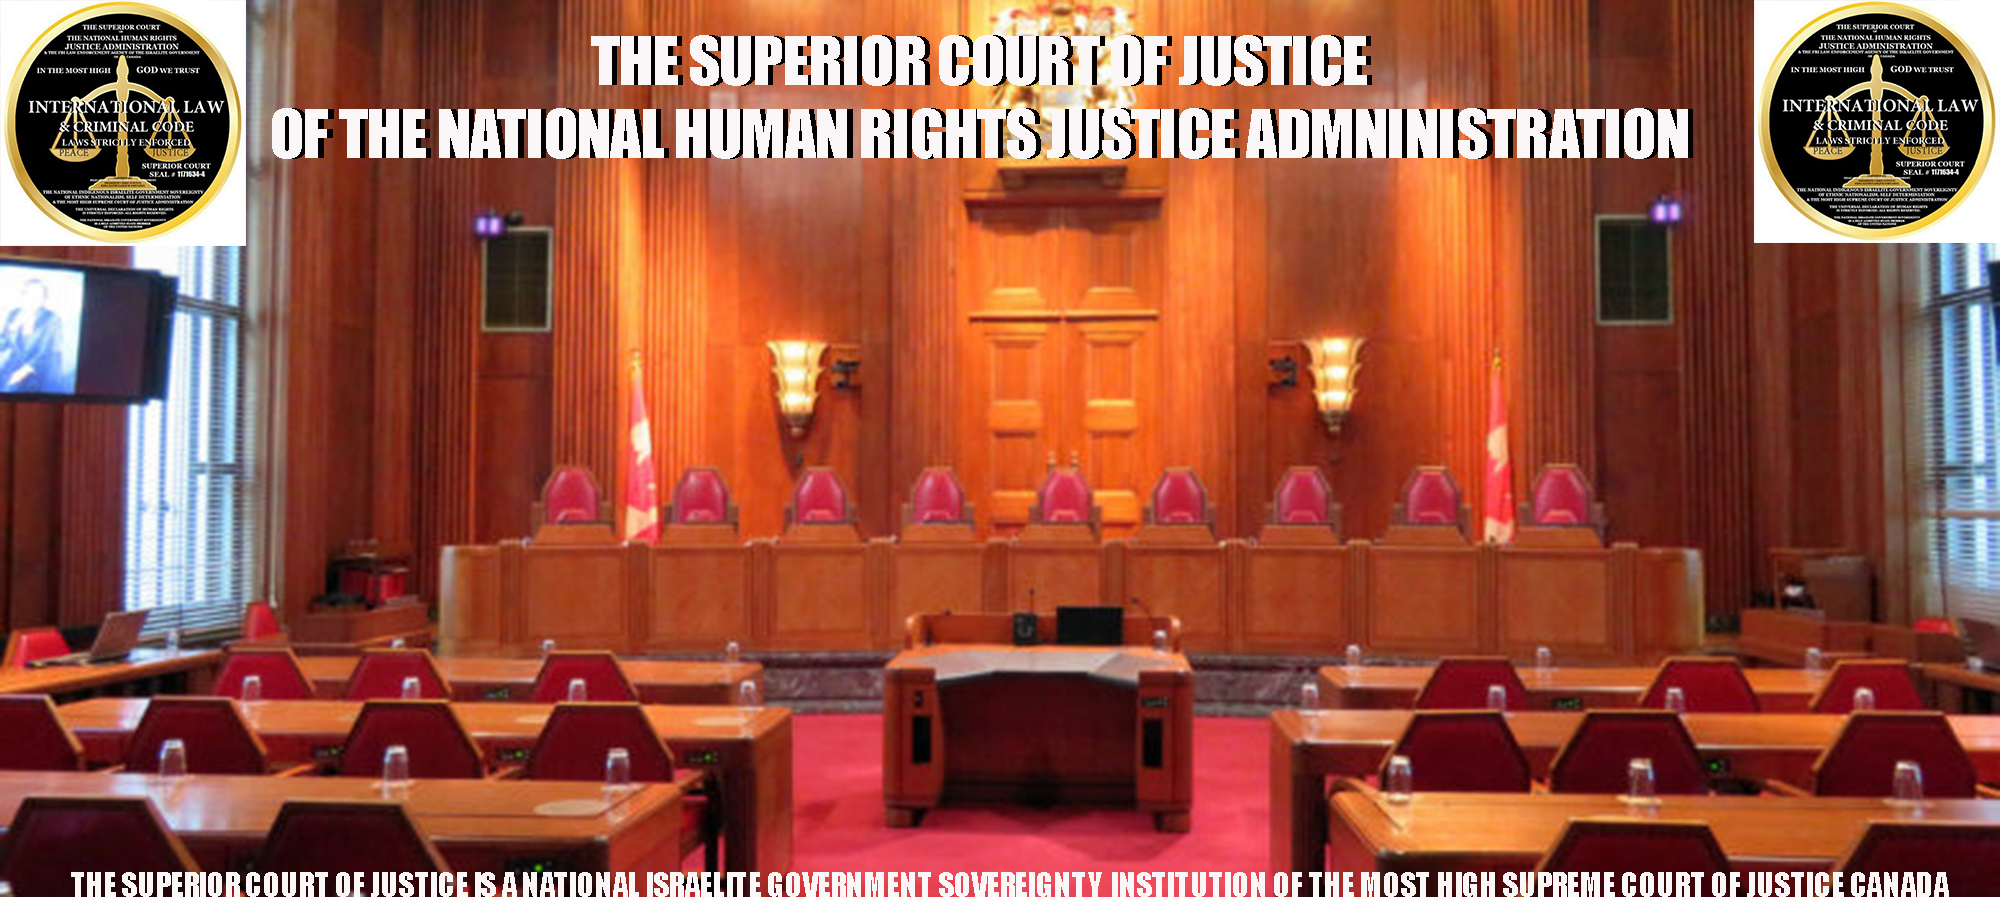 THE SUPERIOR COURT OF JUSTICE